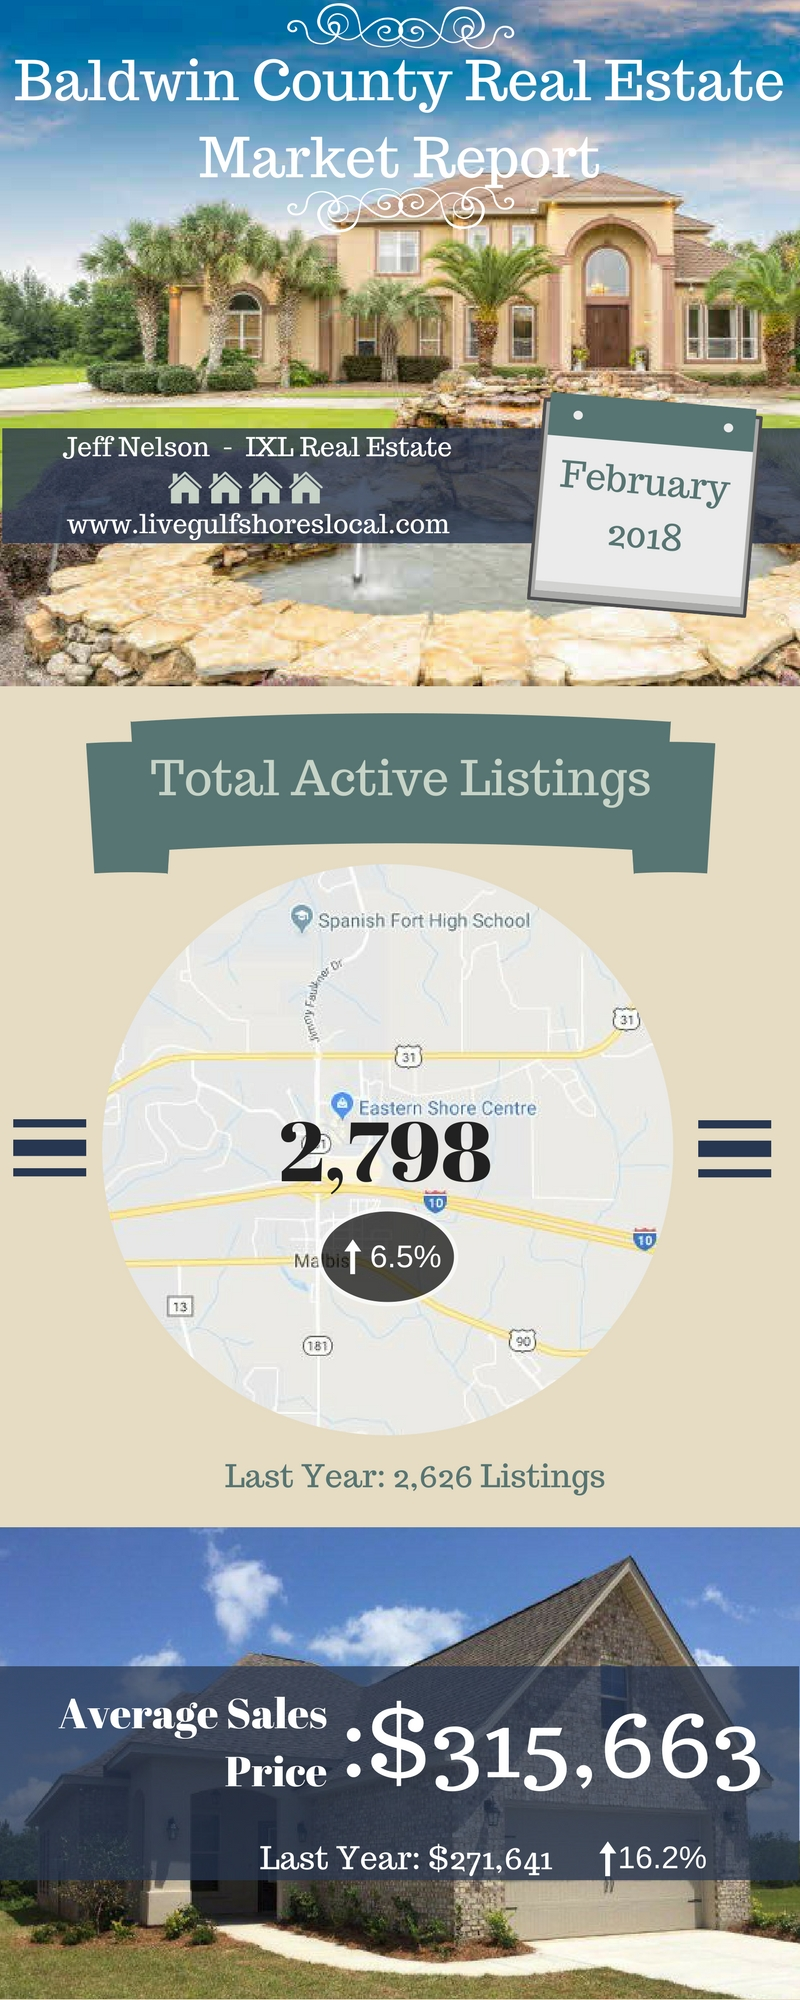 Baldwin County Real Estate Update - Feb 2018